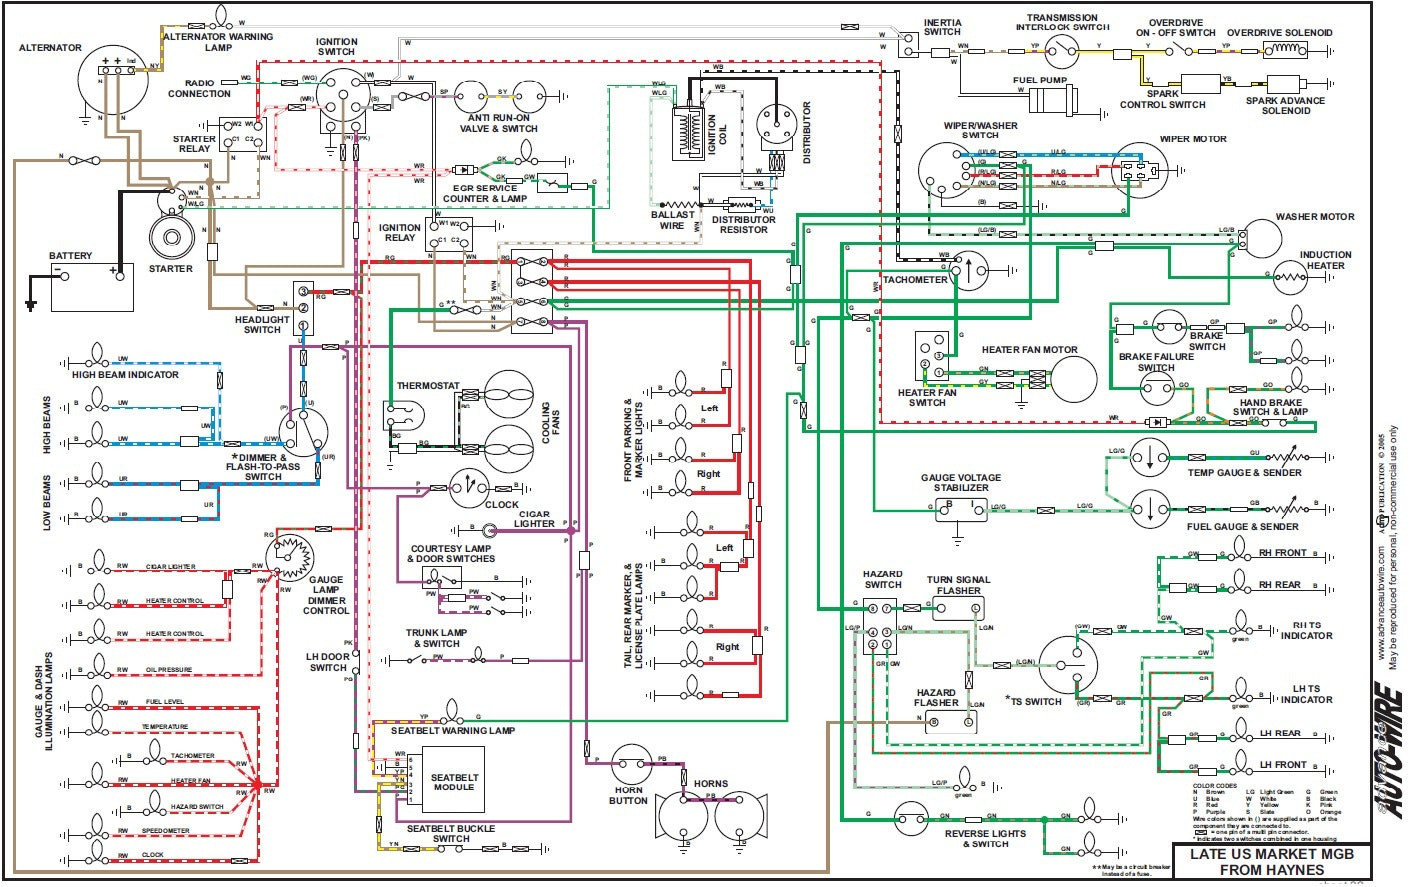 DIAGRAM] 1970 Mgb Vacuum Diagram Wiring Schematic FULL Version HD Quality Wiring  Schematic - KIA4550WIRING.CONCESSIONARIABELOGISENIGALLIA.ITconcessionariabelogisenigallia.it